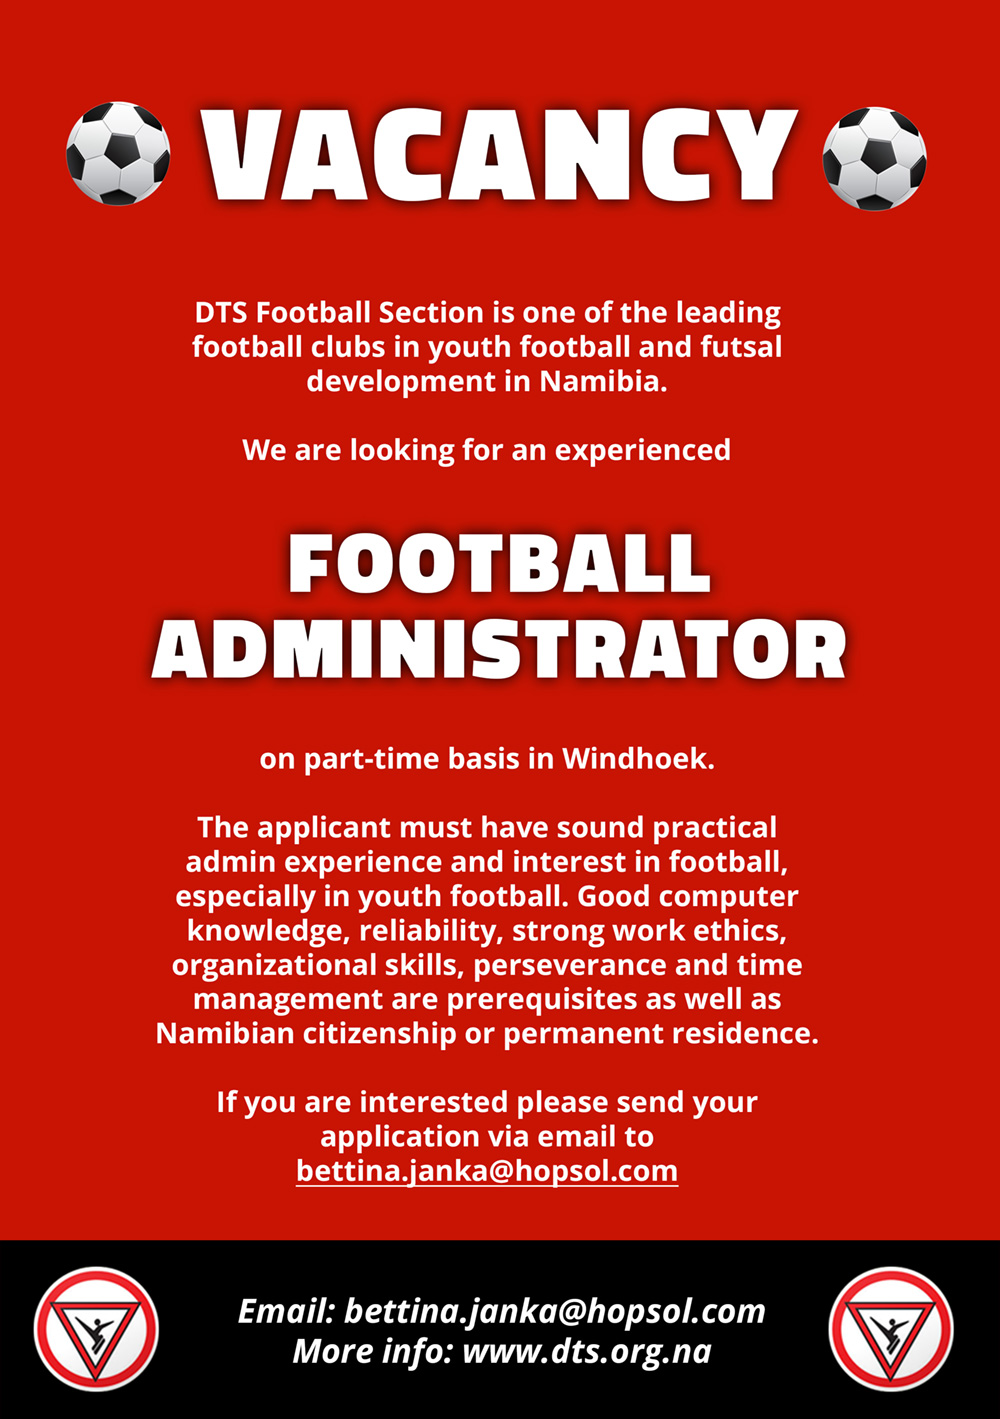 Vacancy Football Administrator